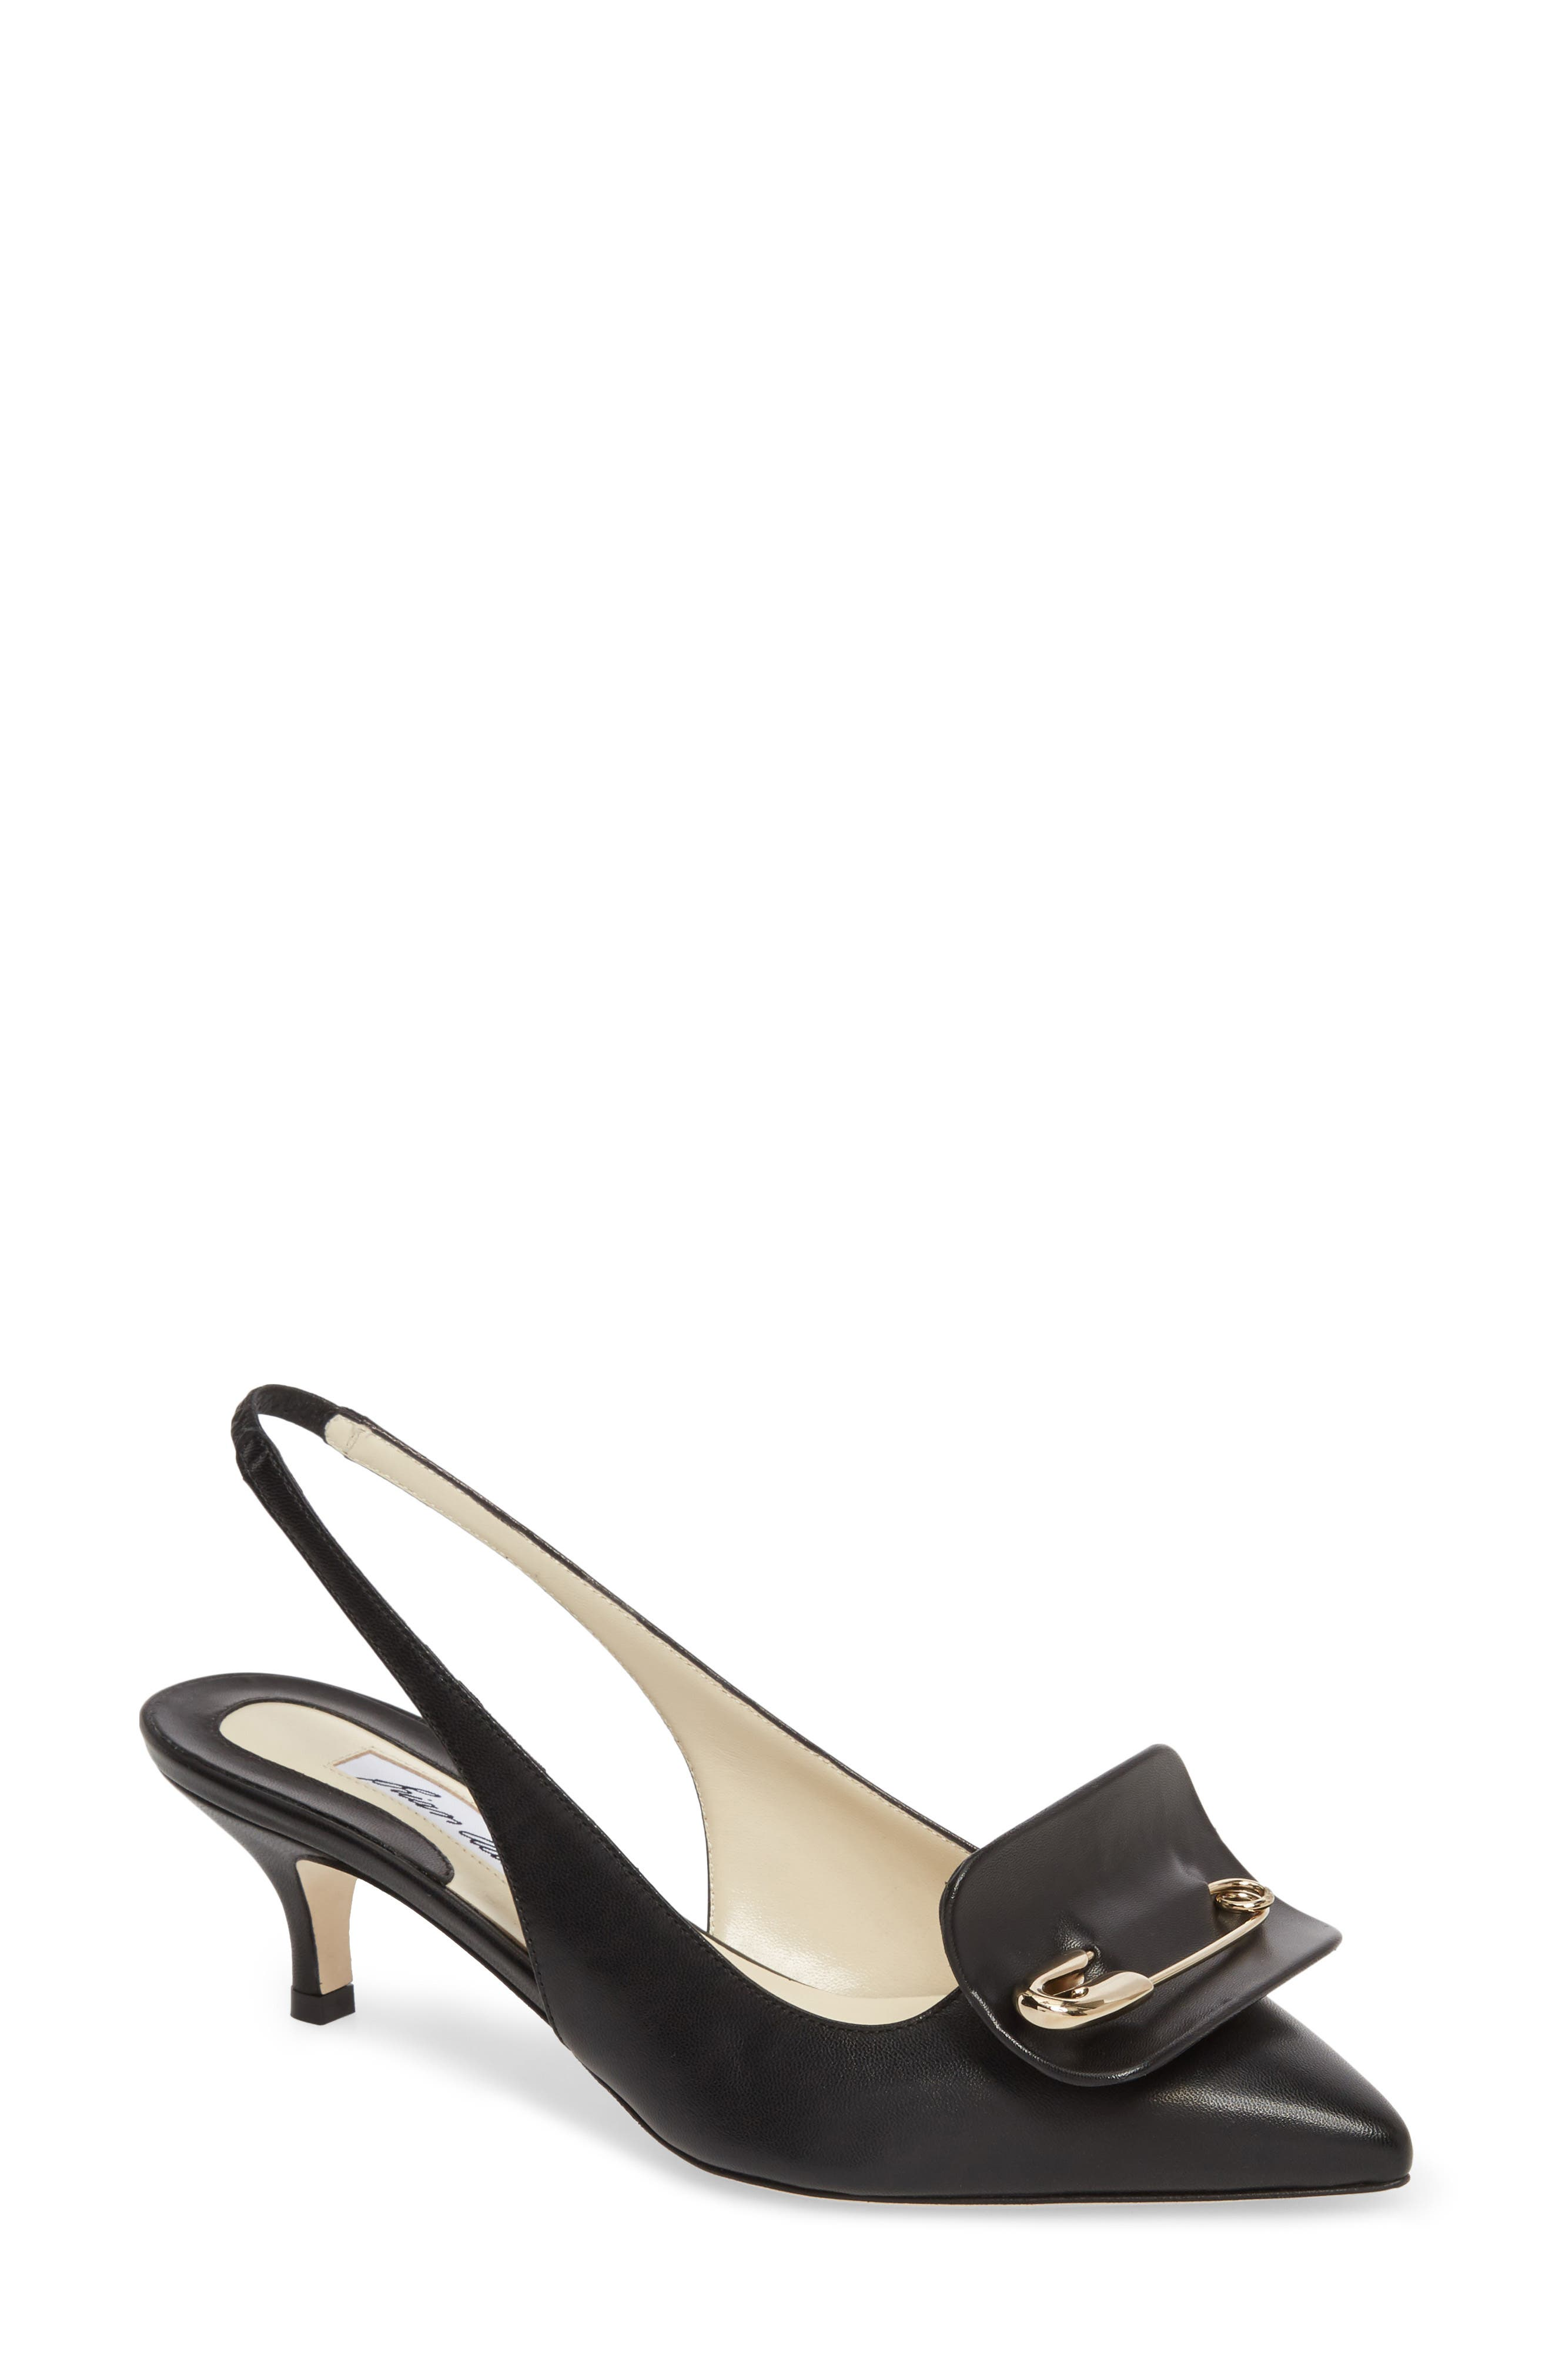 Guiliaa Slingback Pump,                         Main,                         color, BLACK NAPPA